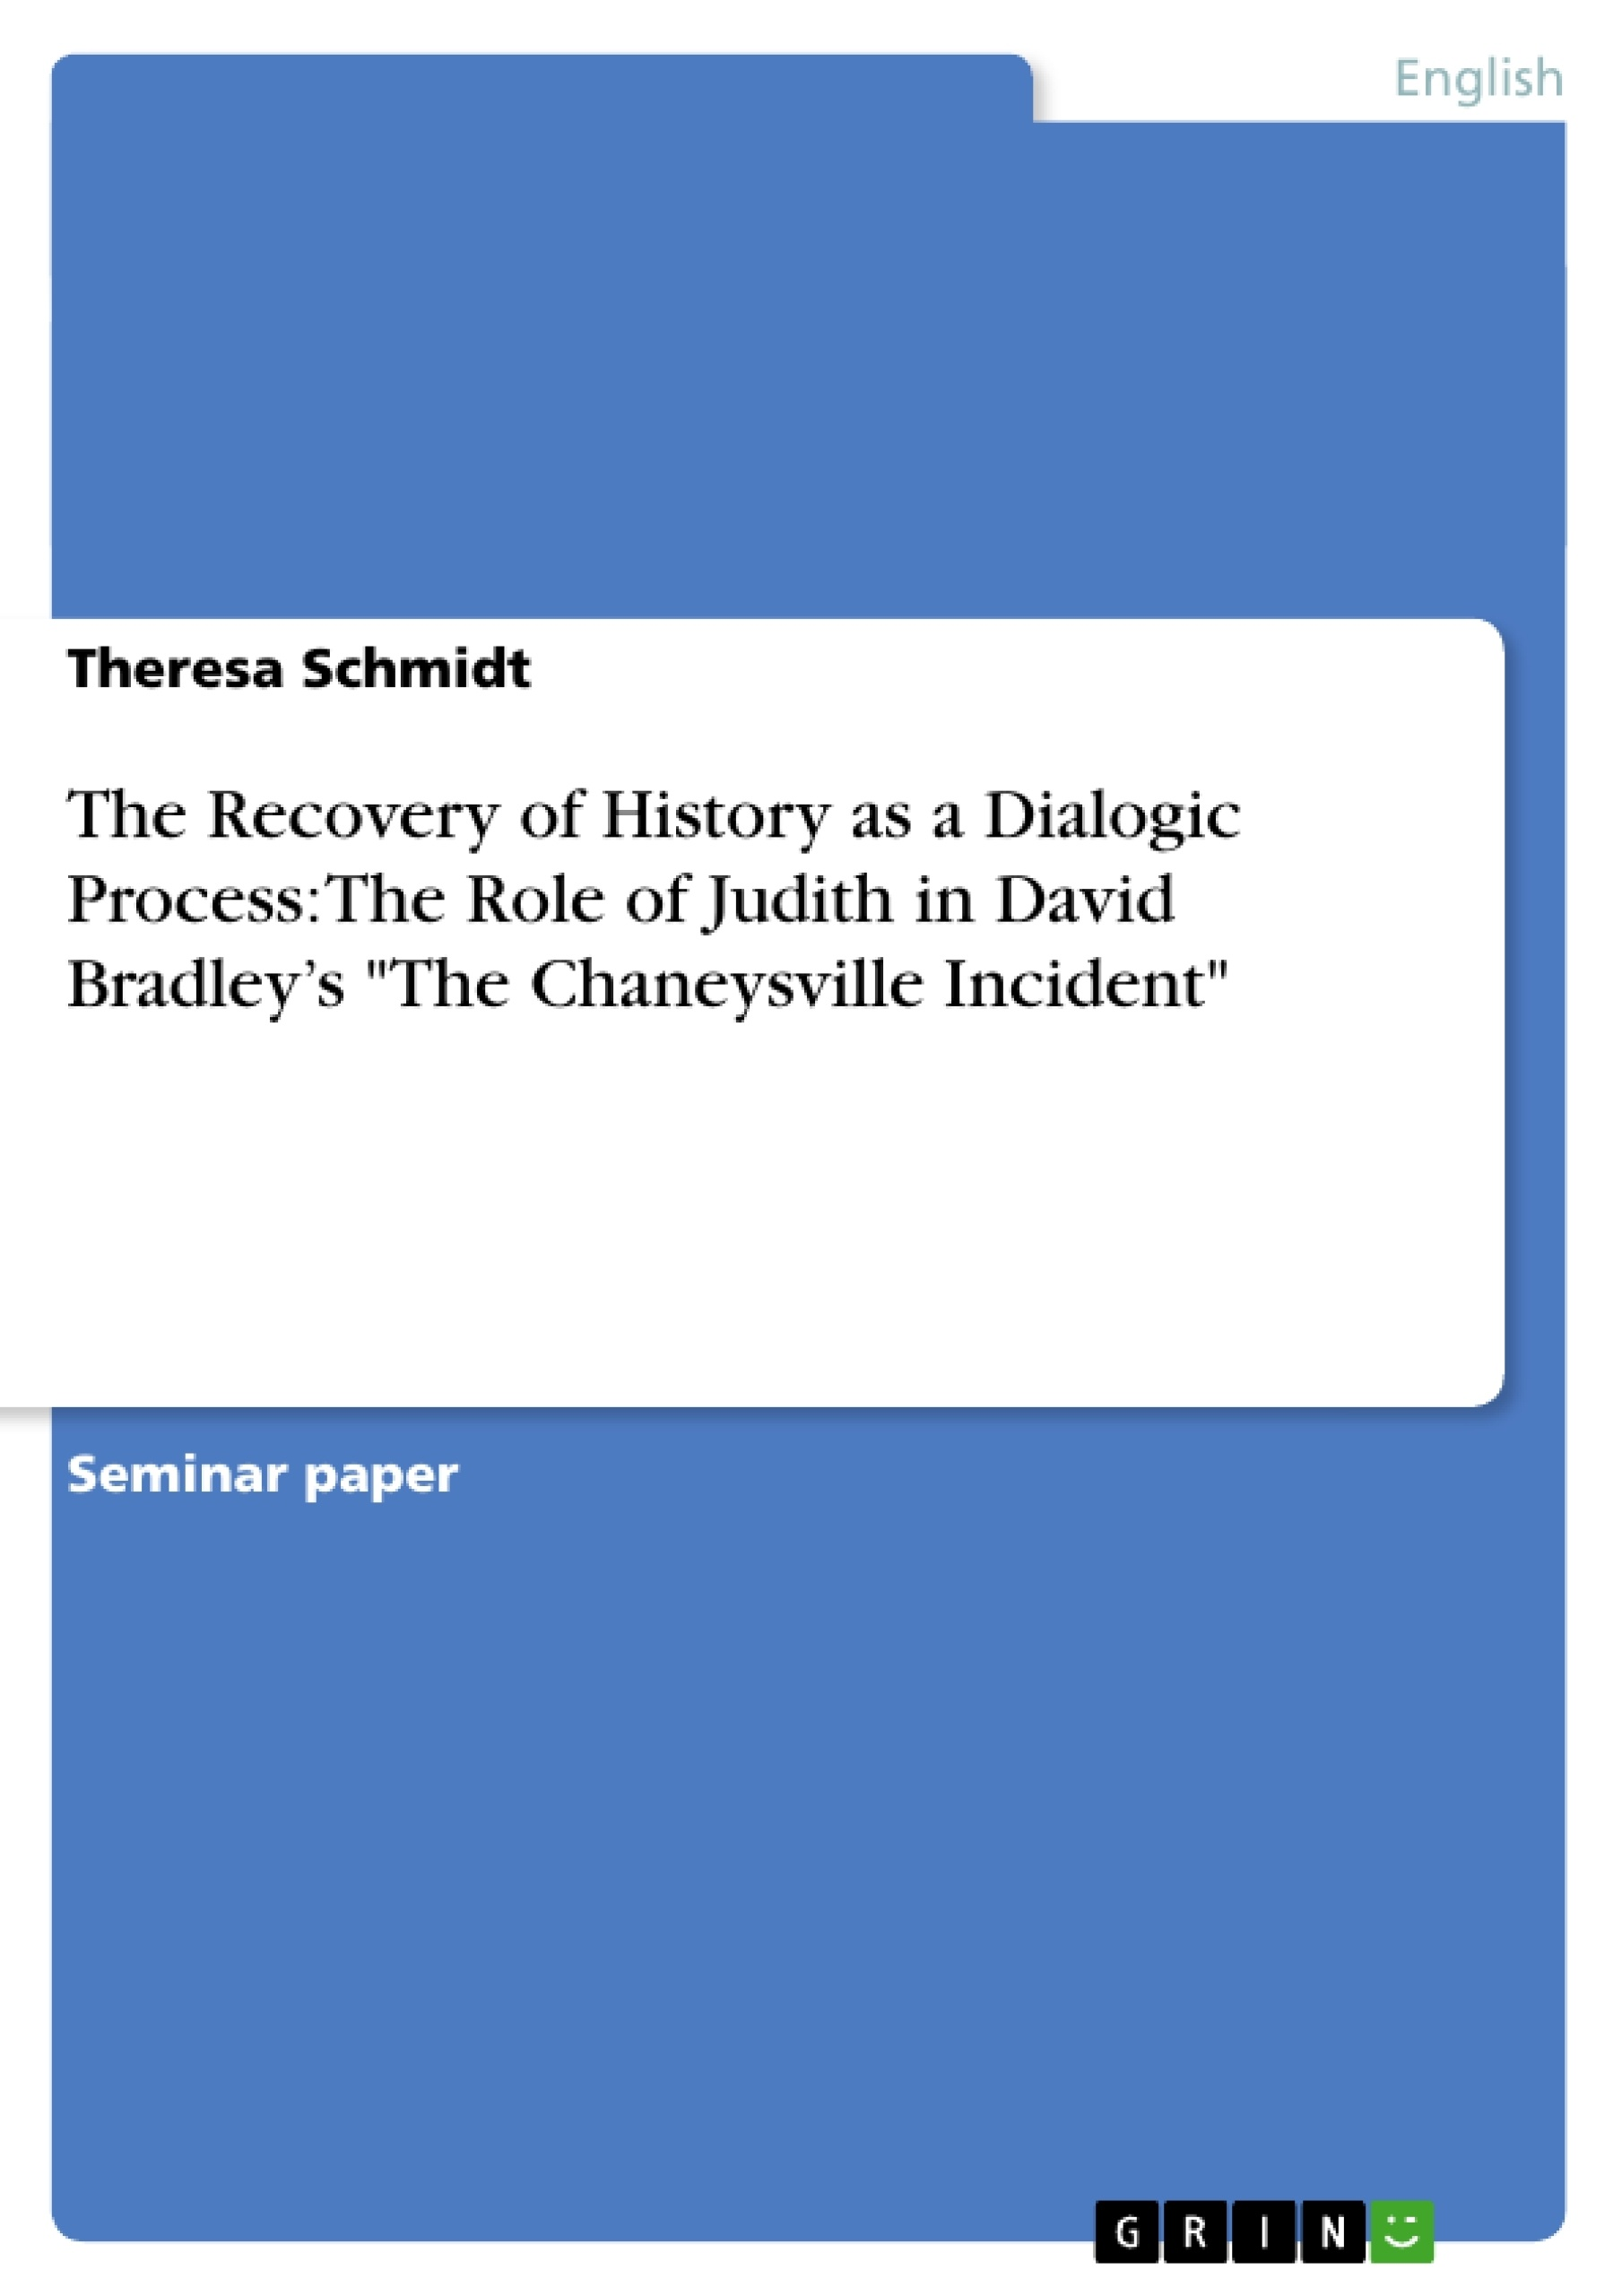 """Title: The Recovery of History as a Dialogic Process: The Role of Judith in David Bradley's """"The Chaneysville Incident"""""""